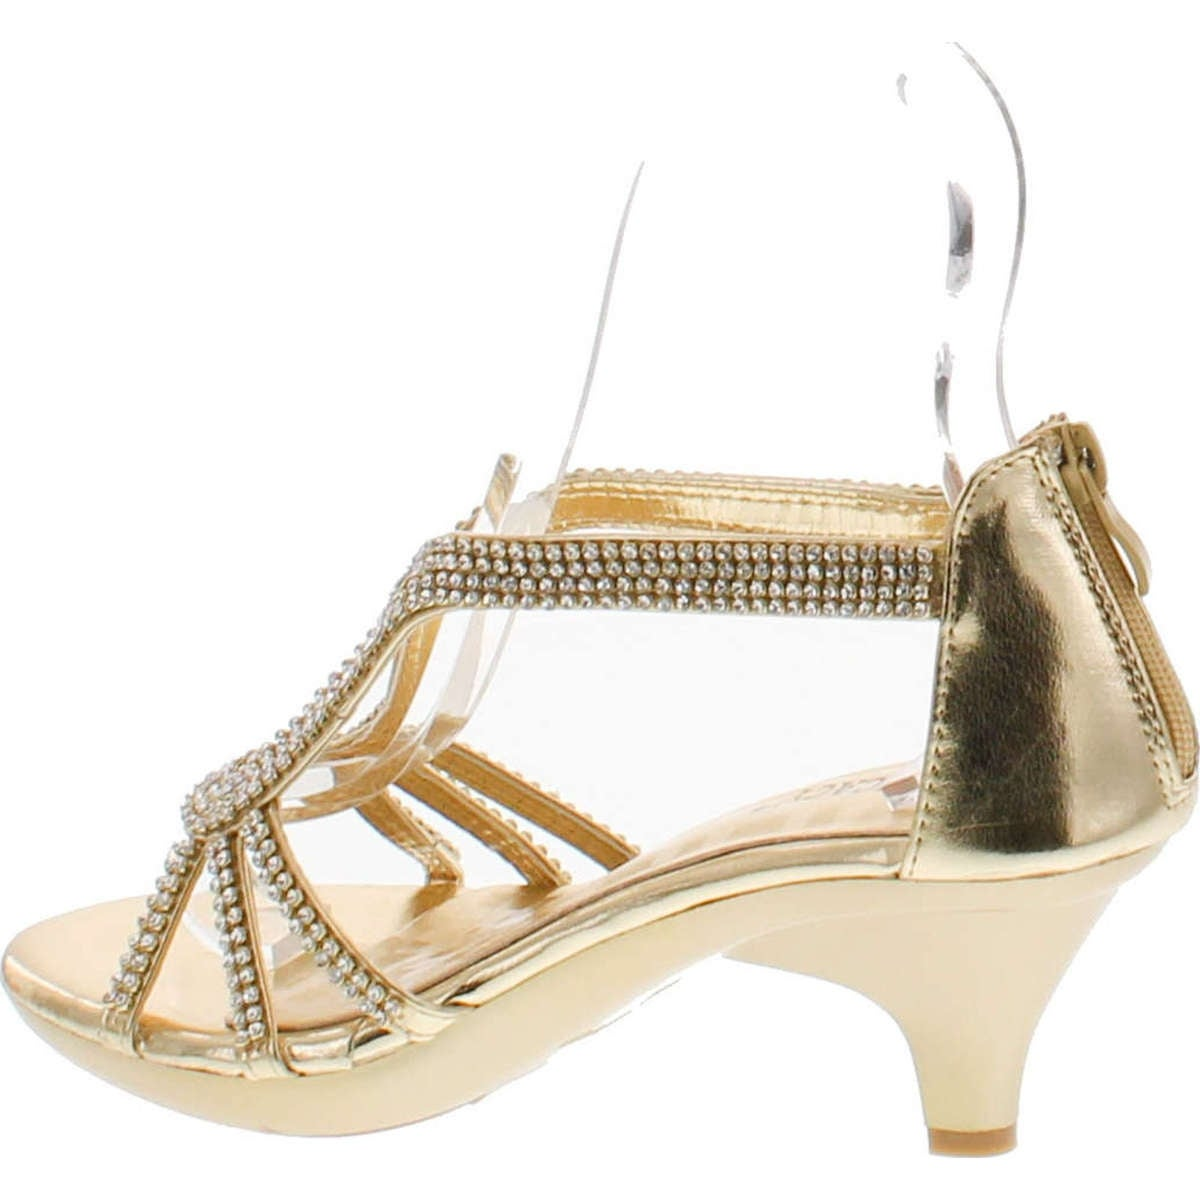 39cdd122254e4c Shop Delicacy Angel 36 Women Dress Sandal Rhinestone Low Heel Pumps - Gold  - Free Shipping On Orders Over  45 - Overstock - 14948064